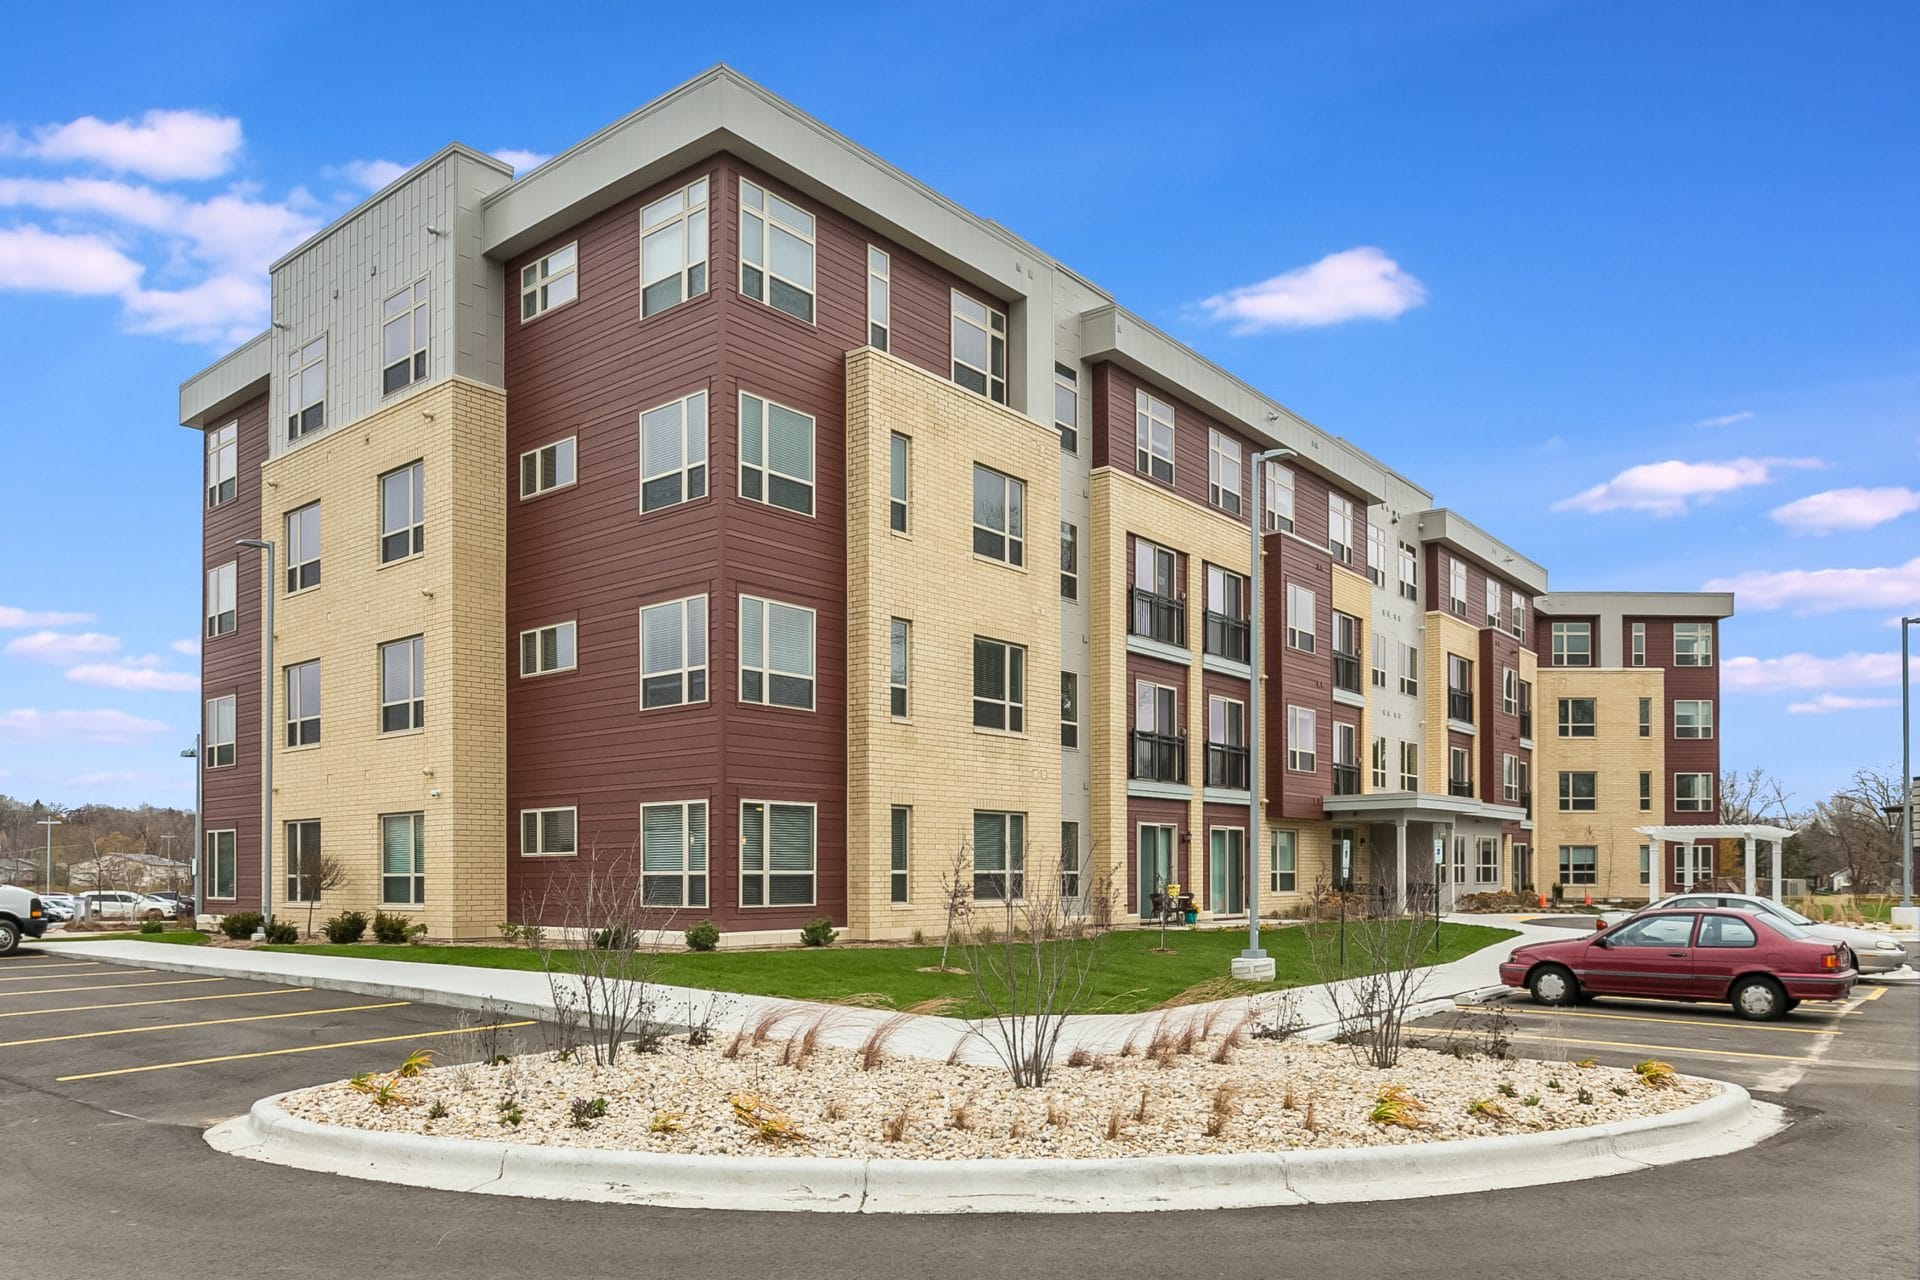 novation senior commons, bear real estate group, novation